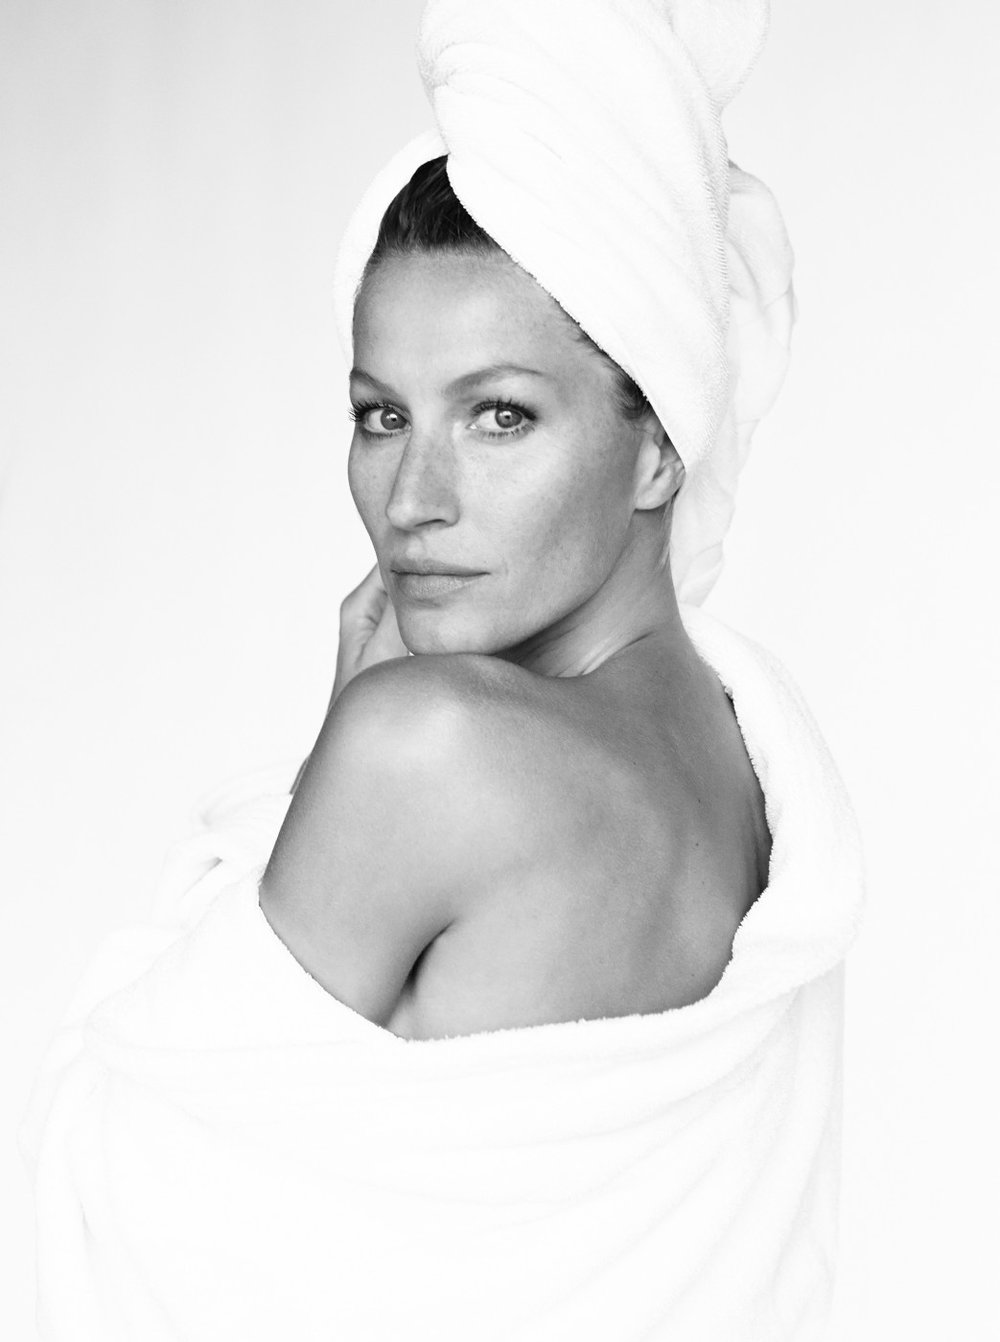 THE ORIGINAL – GISELE BÜNDCHEN BY MARIO TESTINO